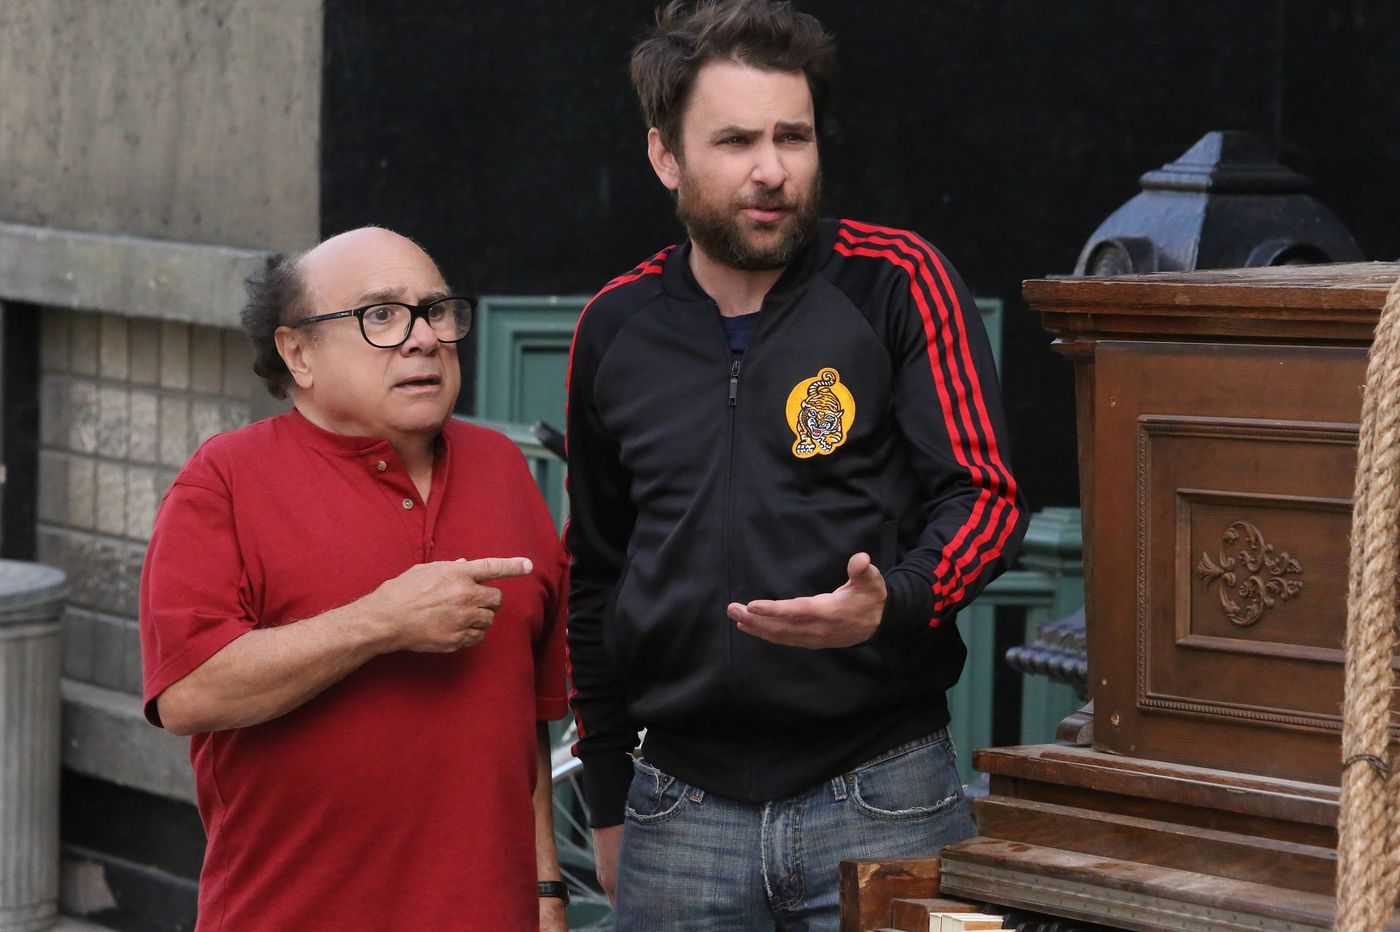 Study reveals which 'It's Always Sunny in Philadelphia' character is the biggest drunk